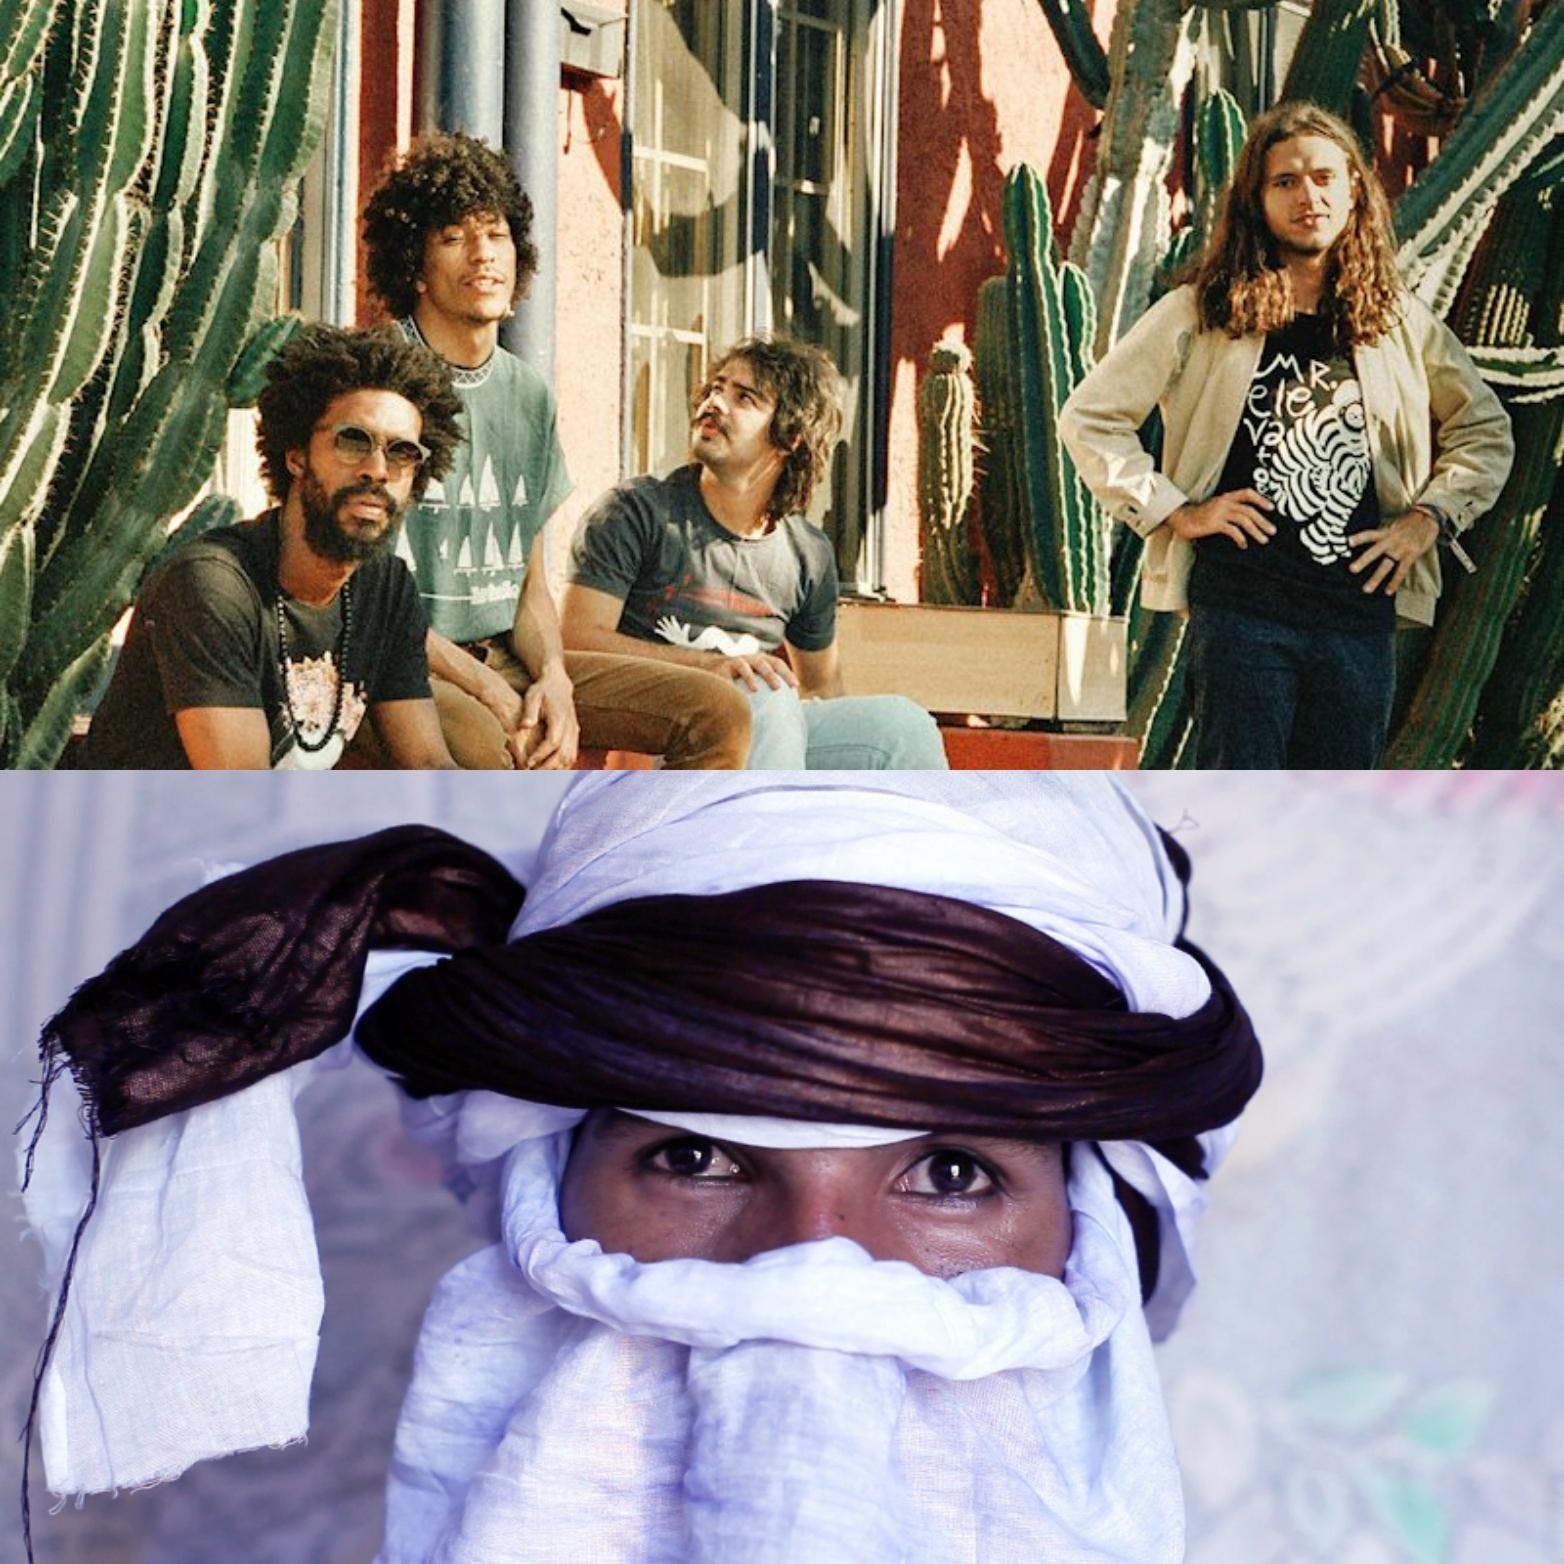 Mdou Moctar + Boogarins with Lord Buffalo